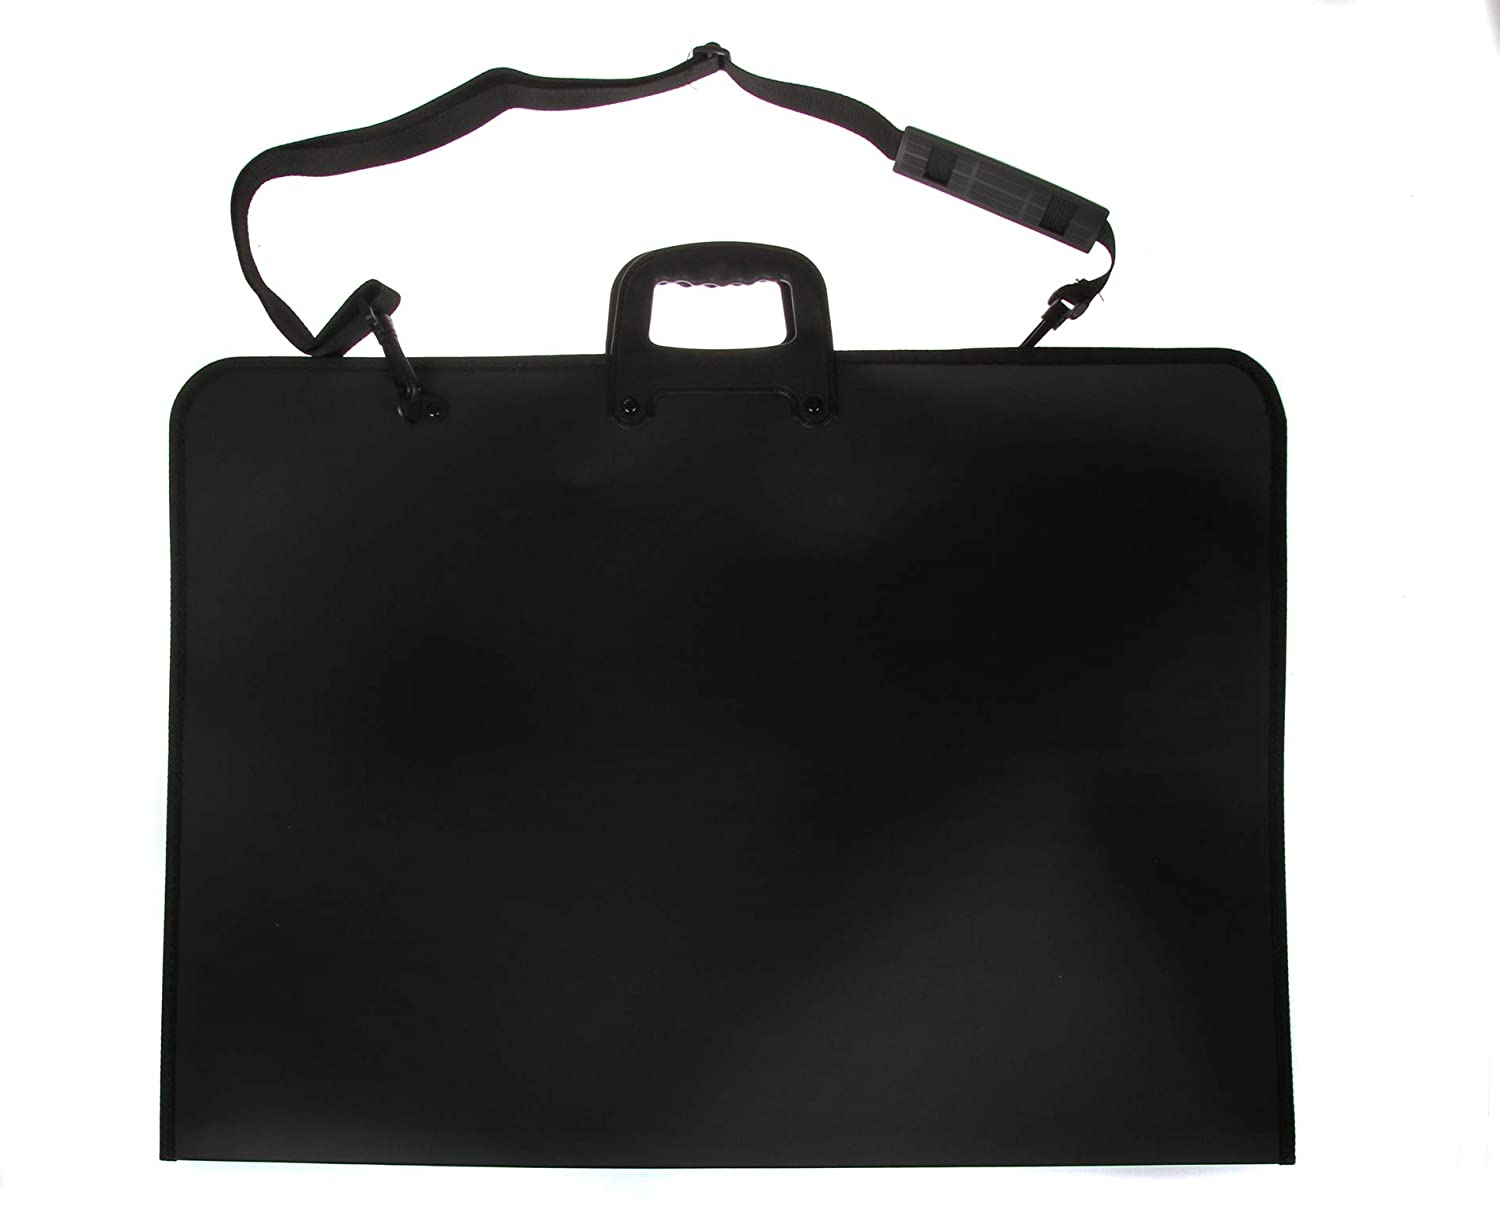 Mapac : A2 Academy Case : Black : Shoulder Strap Included 15222310